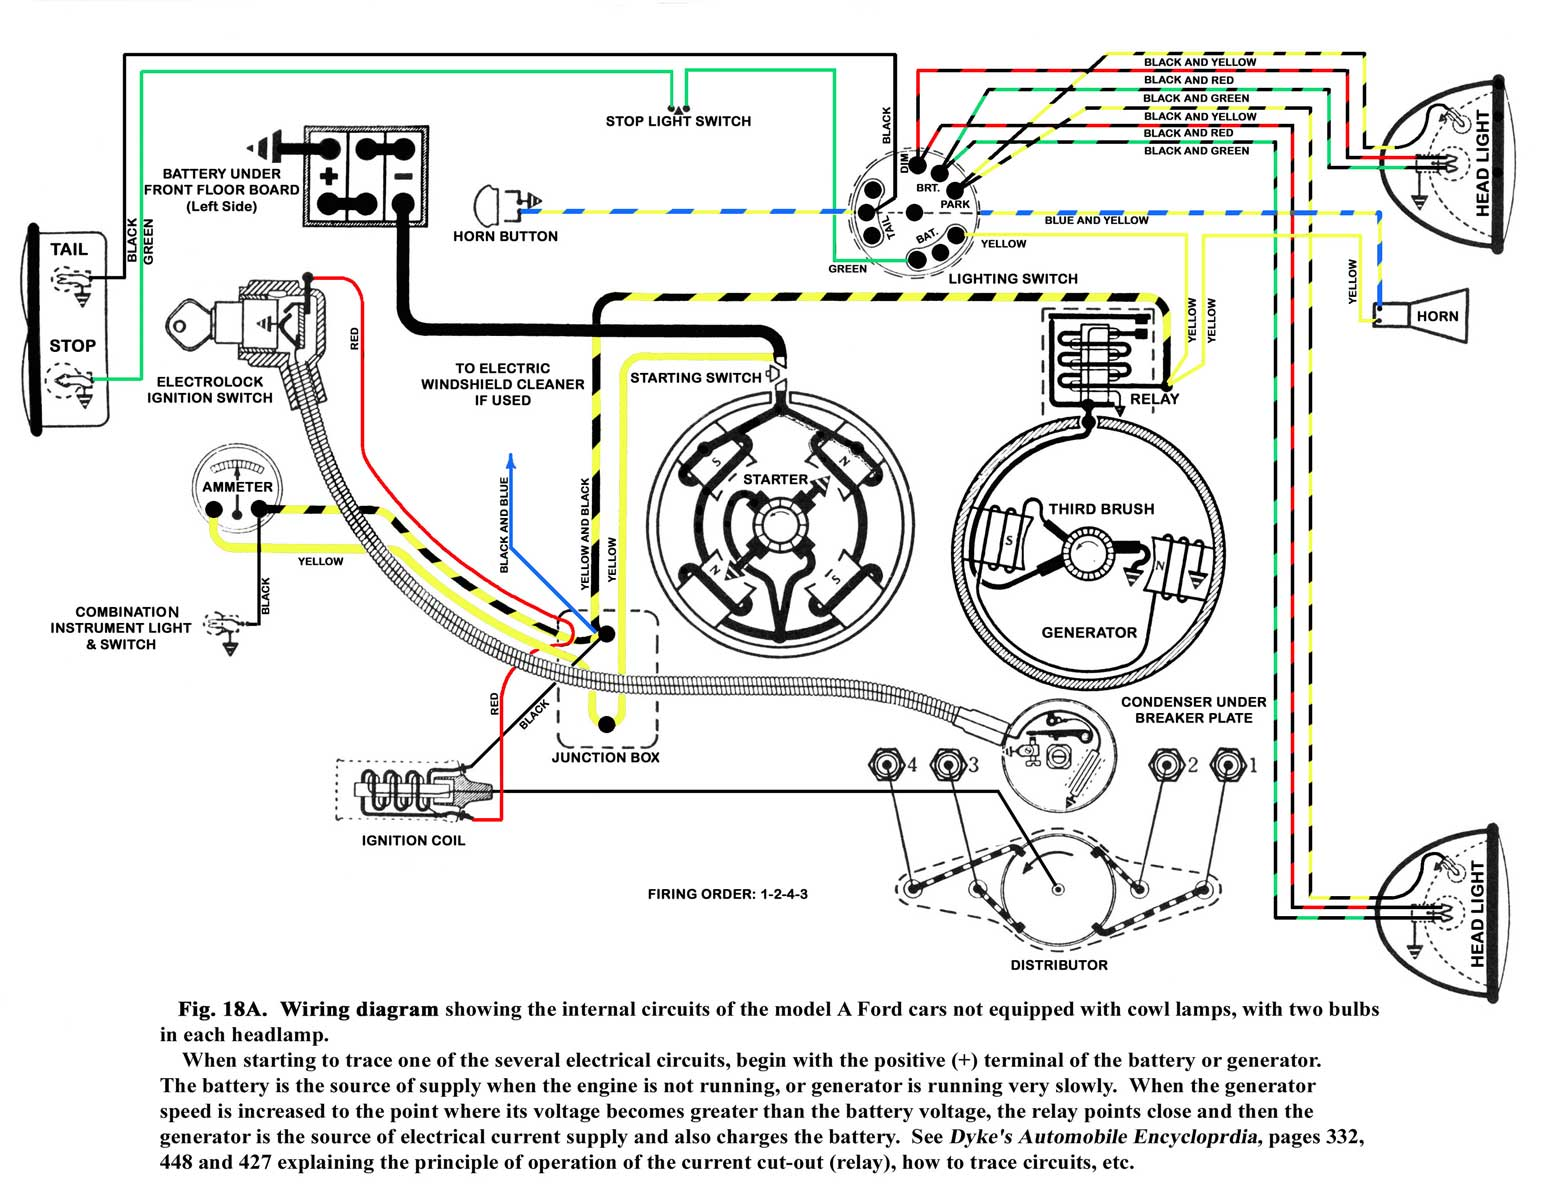 E6074F Model A Ford Generator Wiring Diagram | Wiring LibraryWiring Library